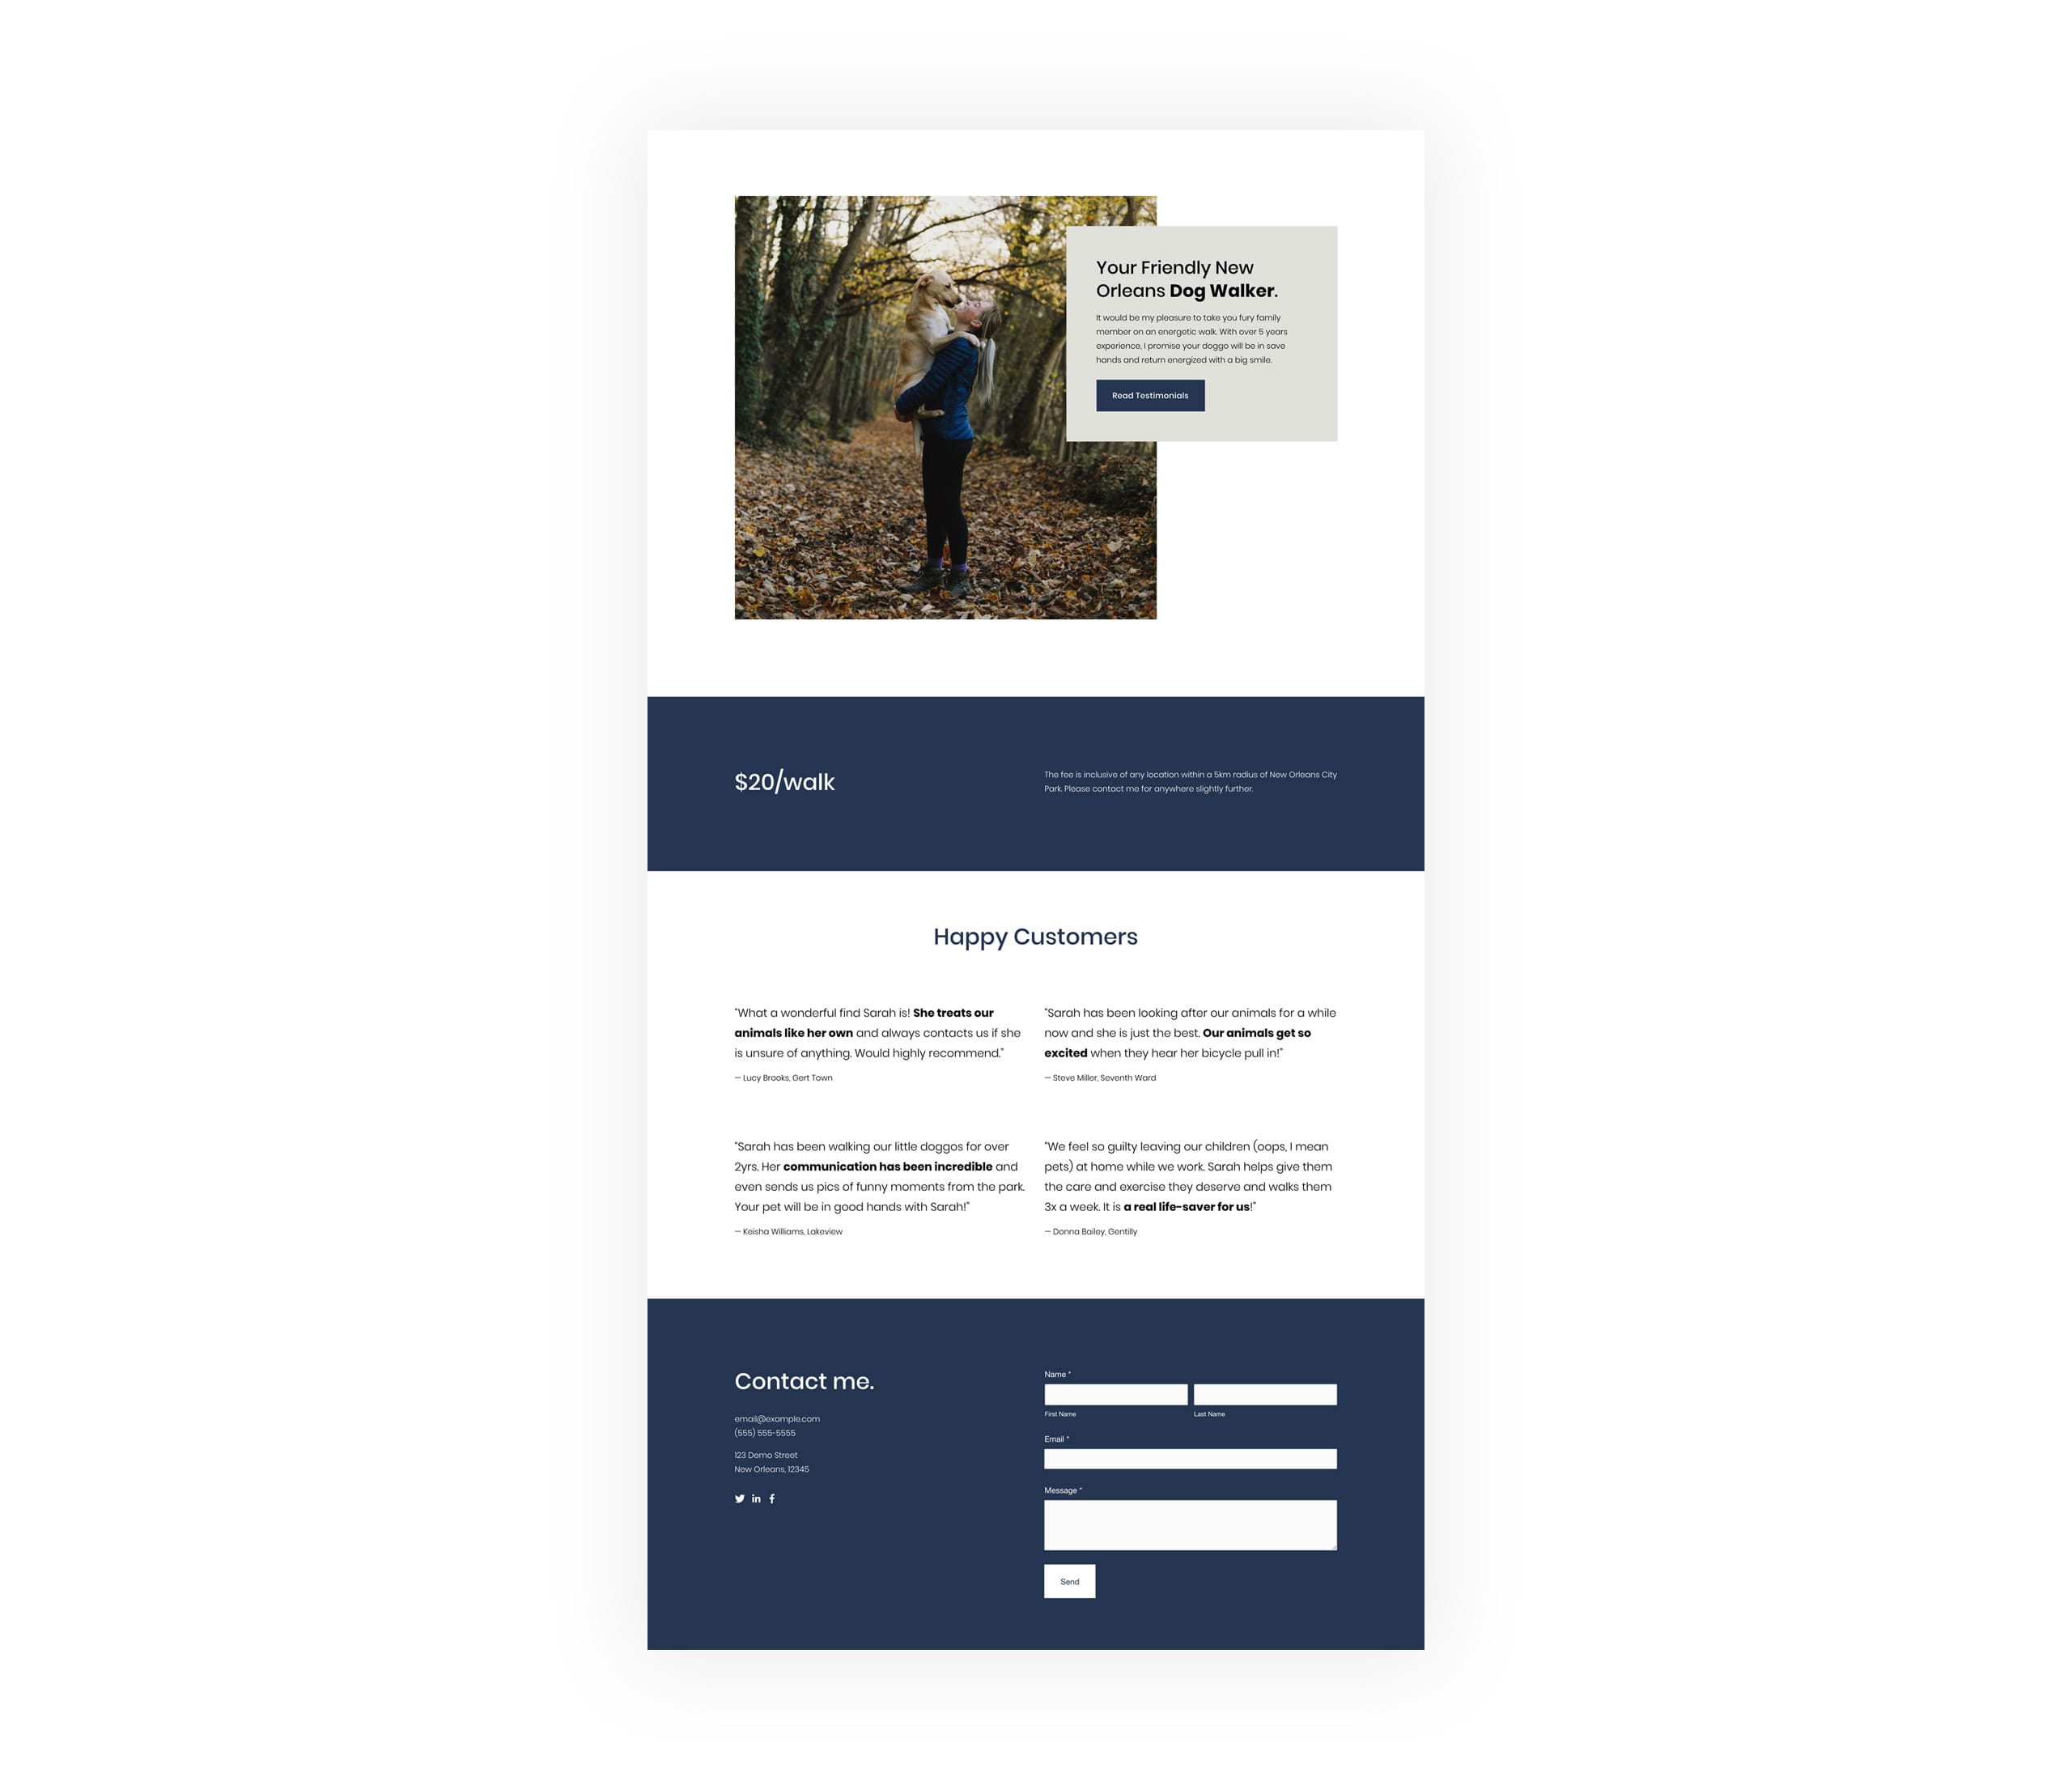 Landing Page Overview